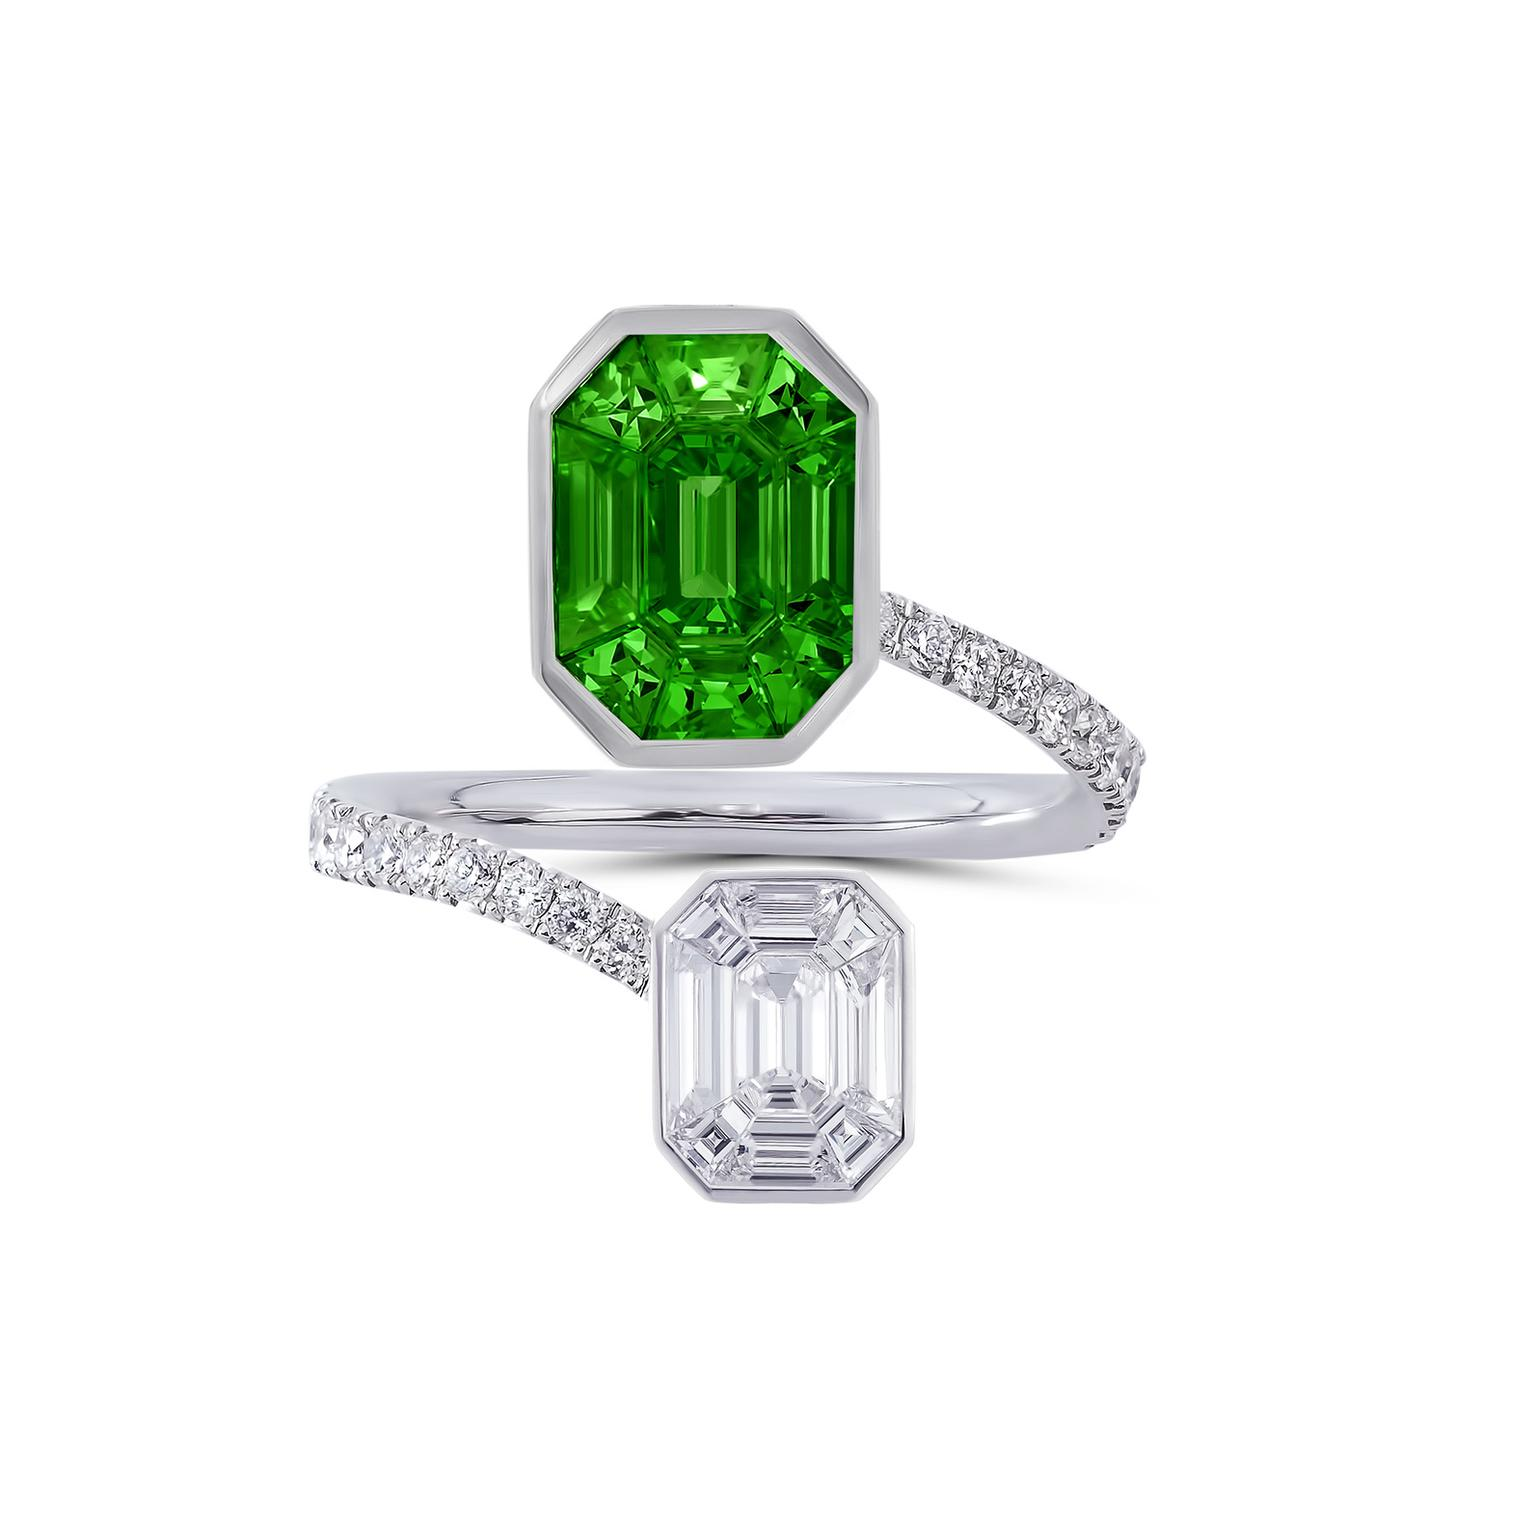 Stenzhorn Muse Pantone diamond and tsavorite ring